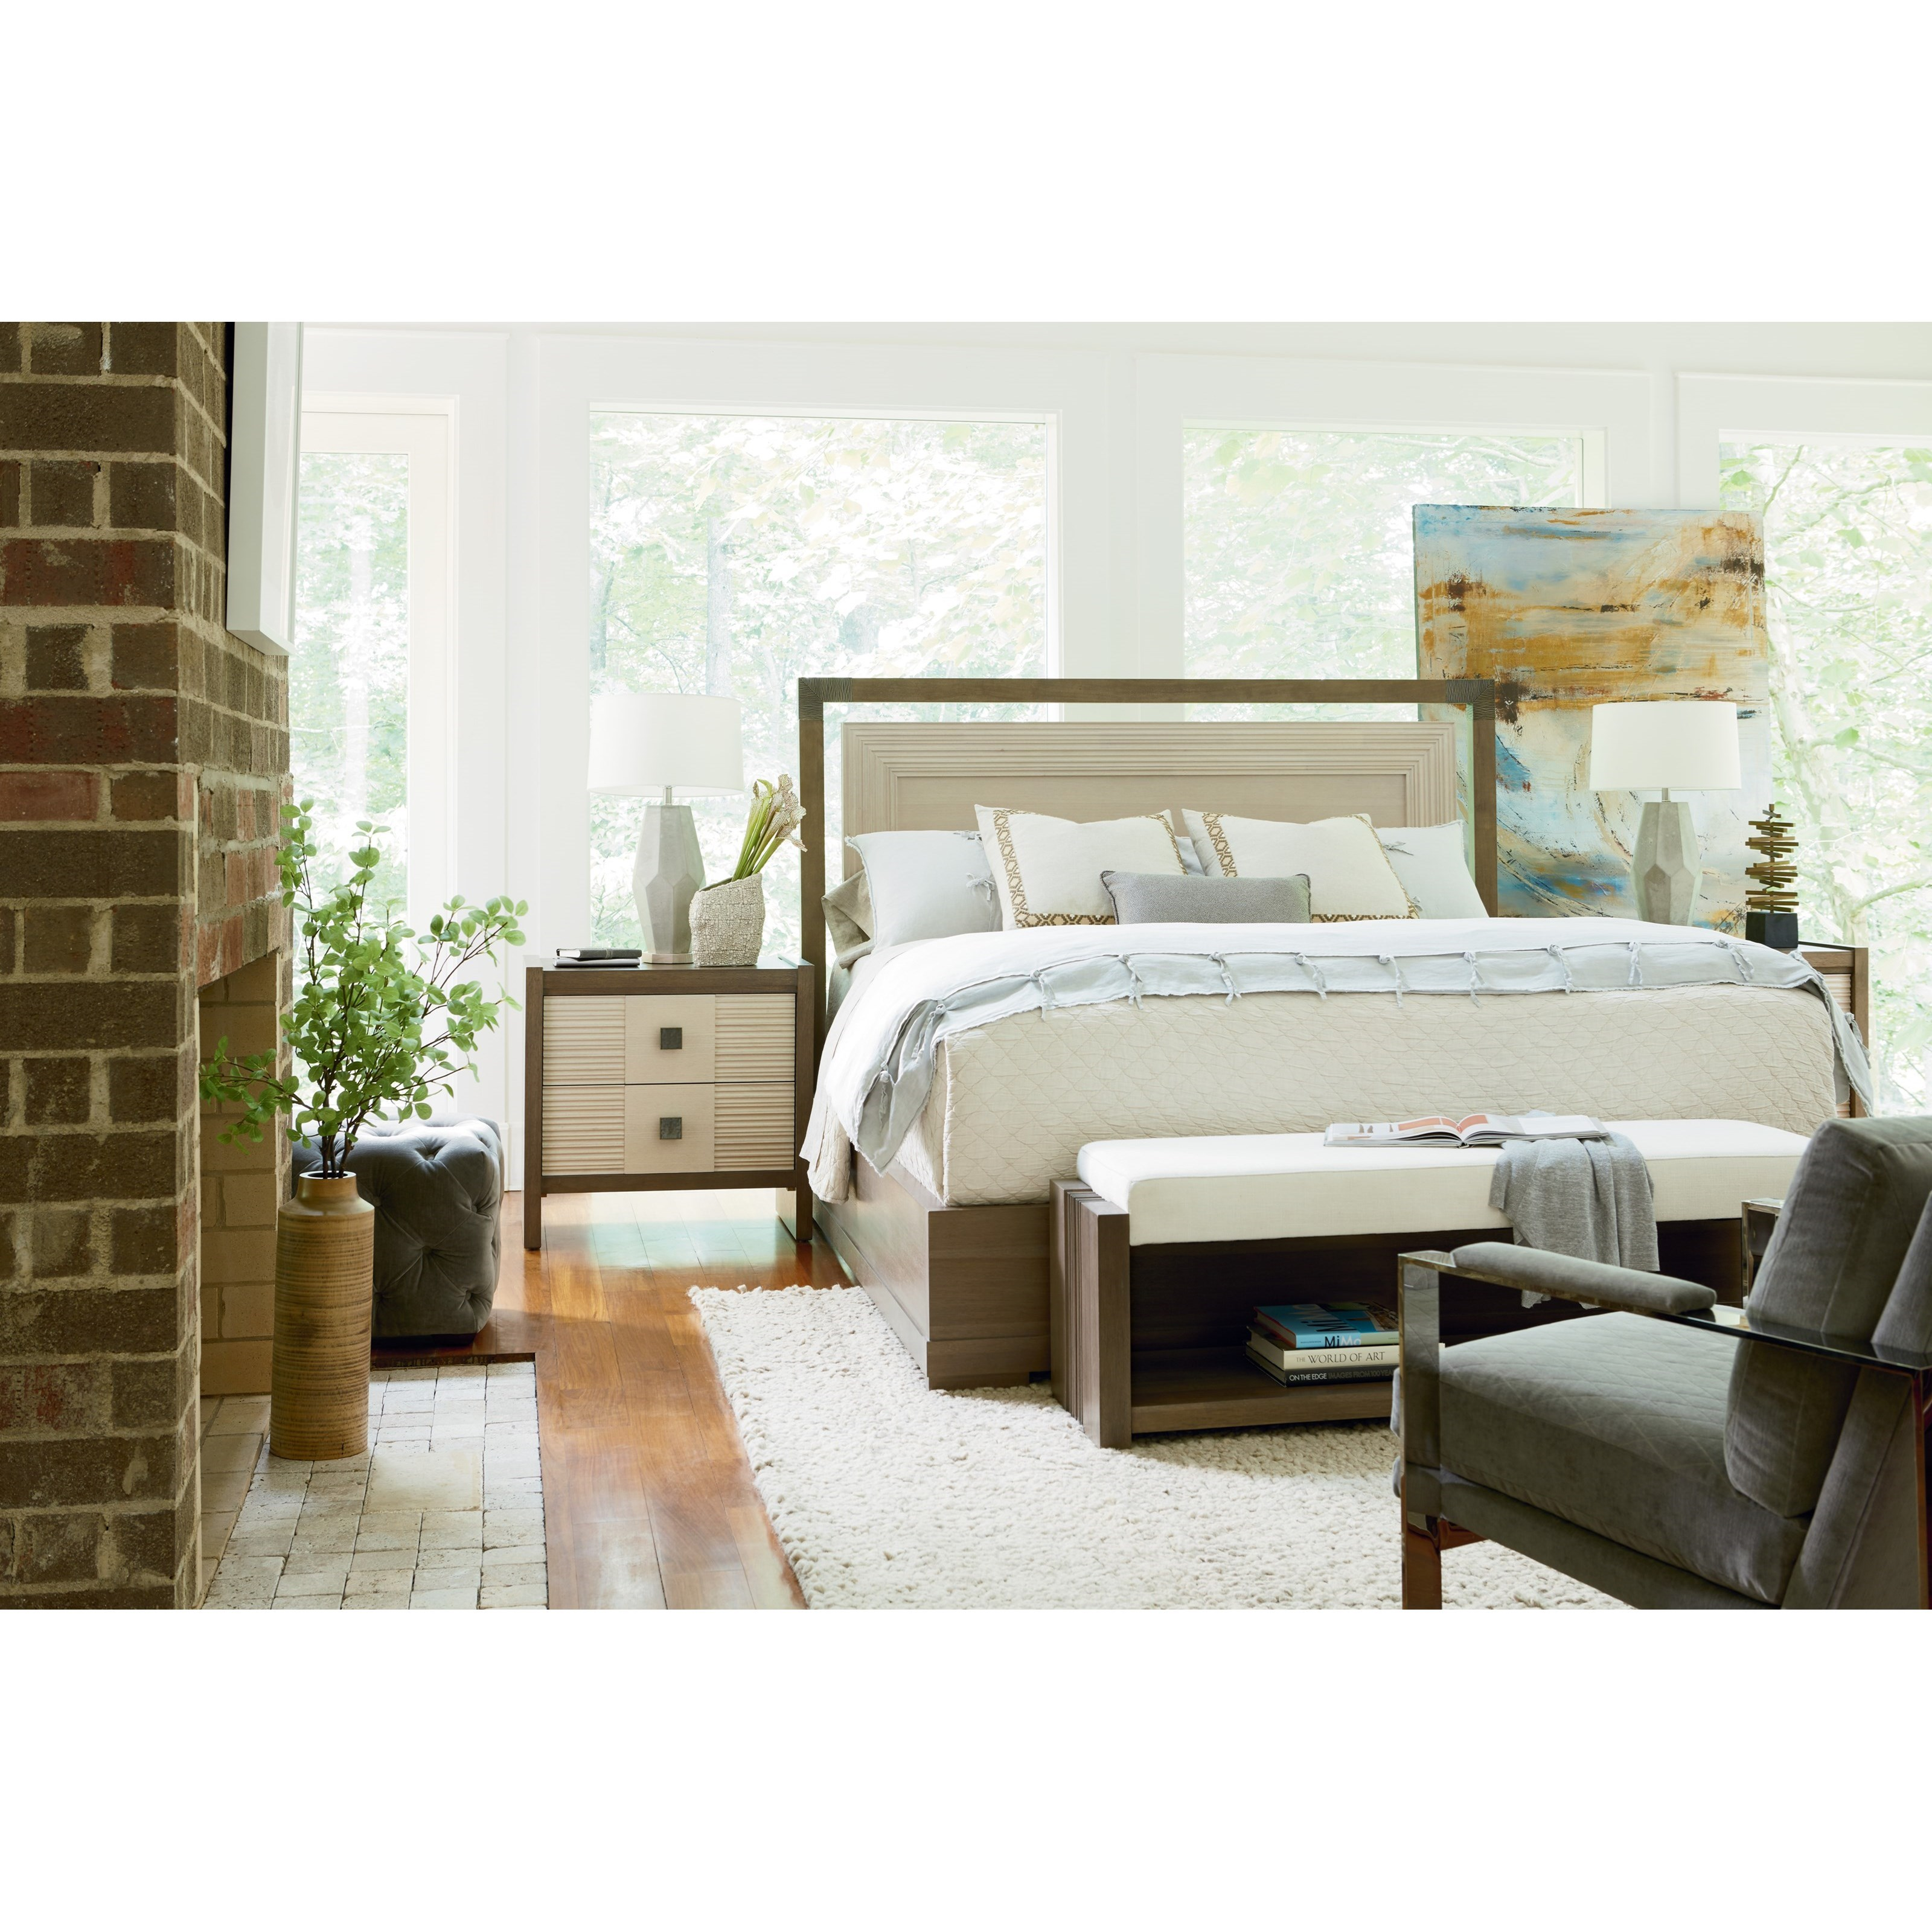 Synchronicity King Bedroom Group by O'Connor Designs at Sprintz Furniture